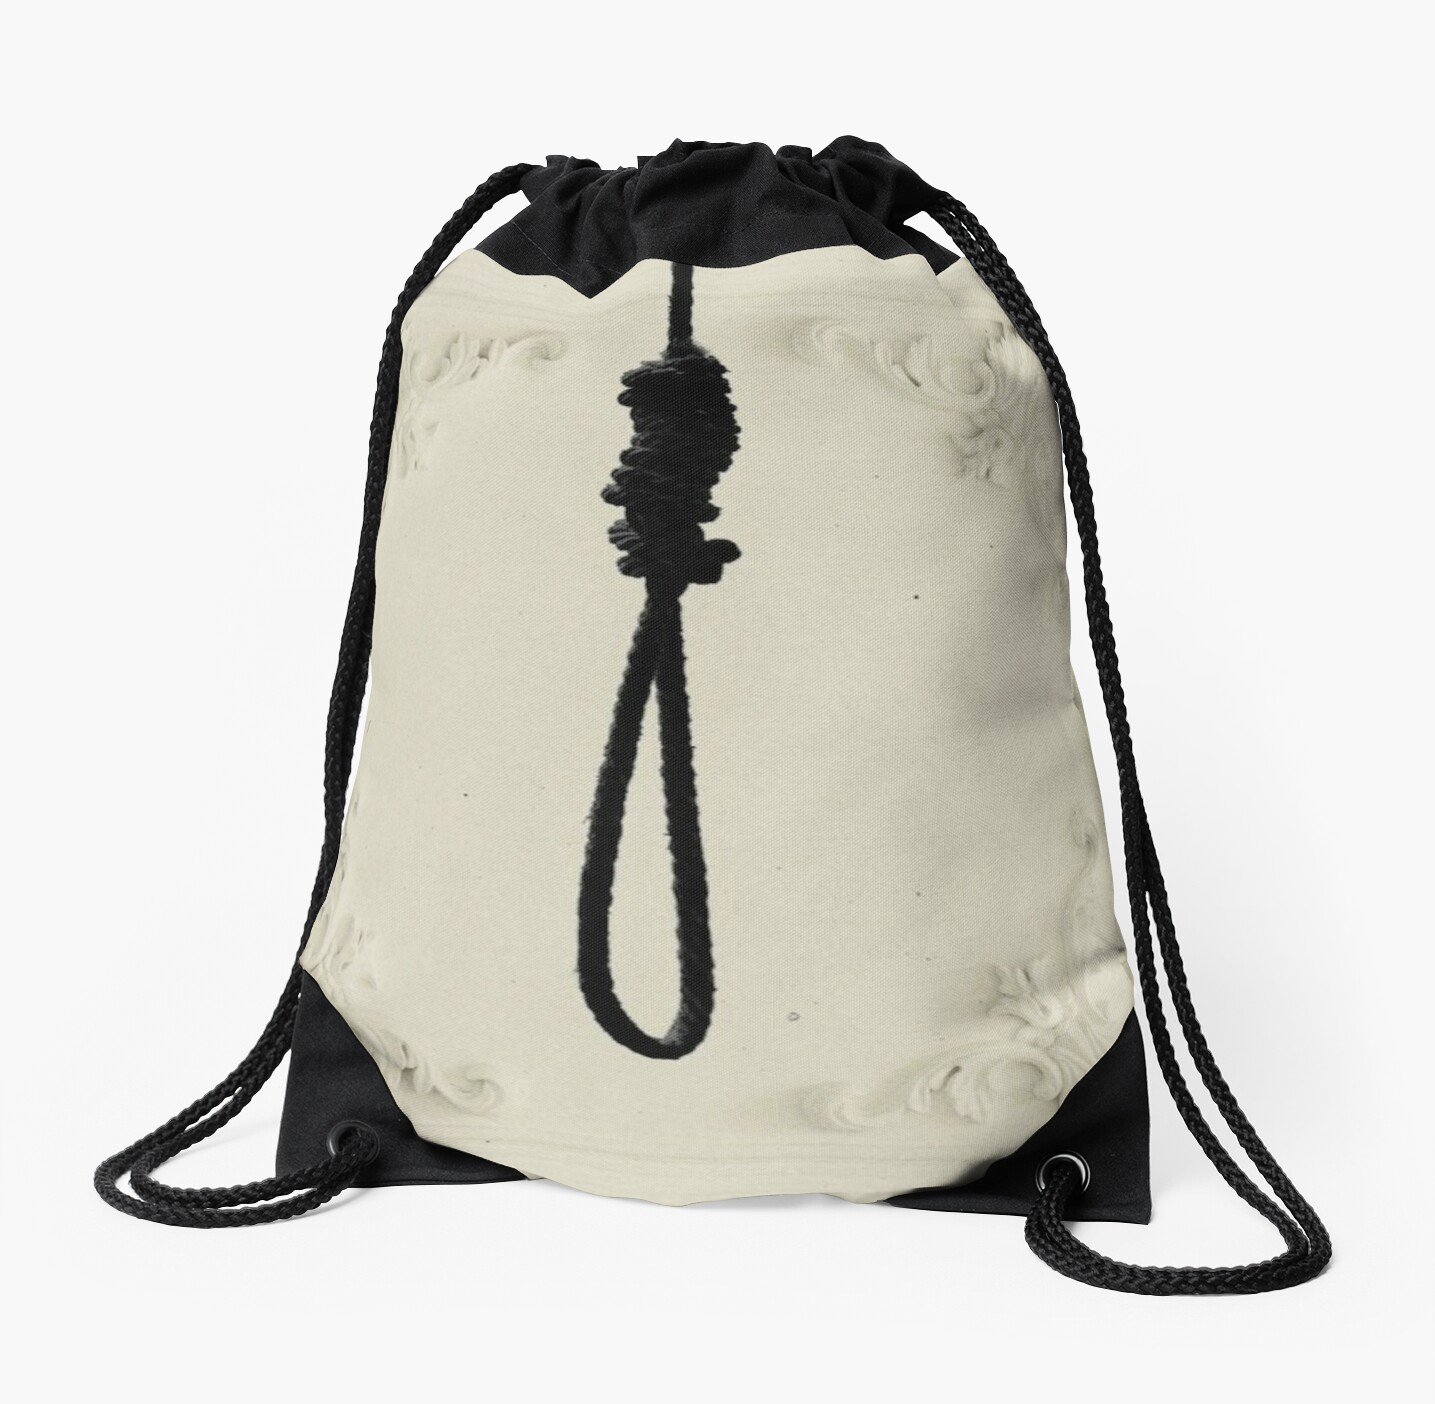 cashmere noose drawstring bags by subwaycar redbubble